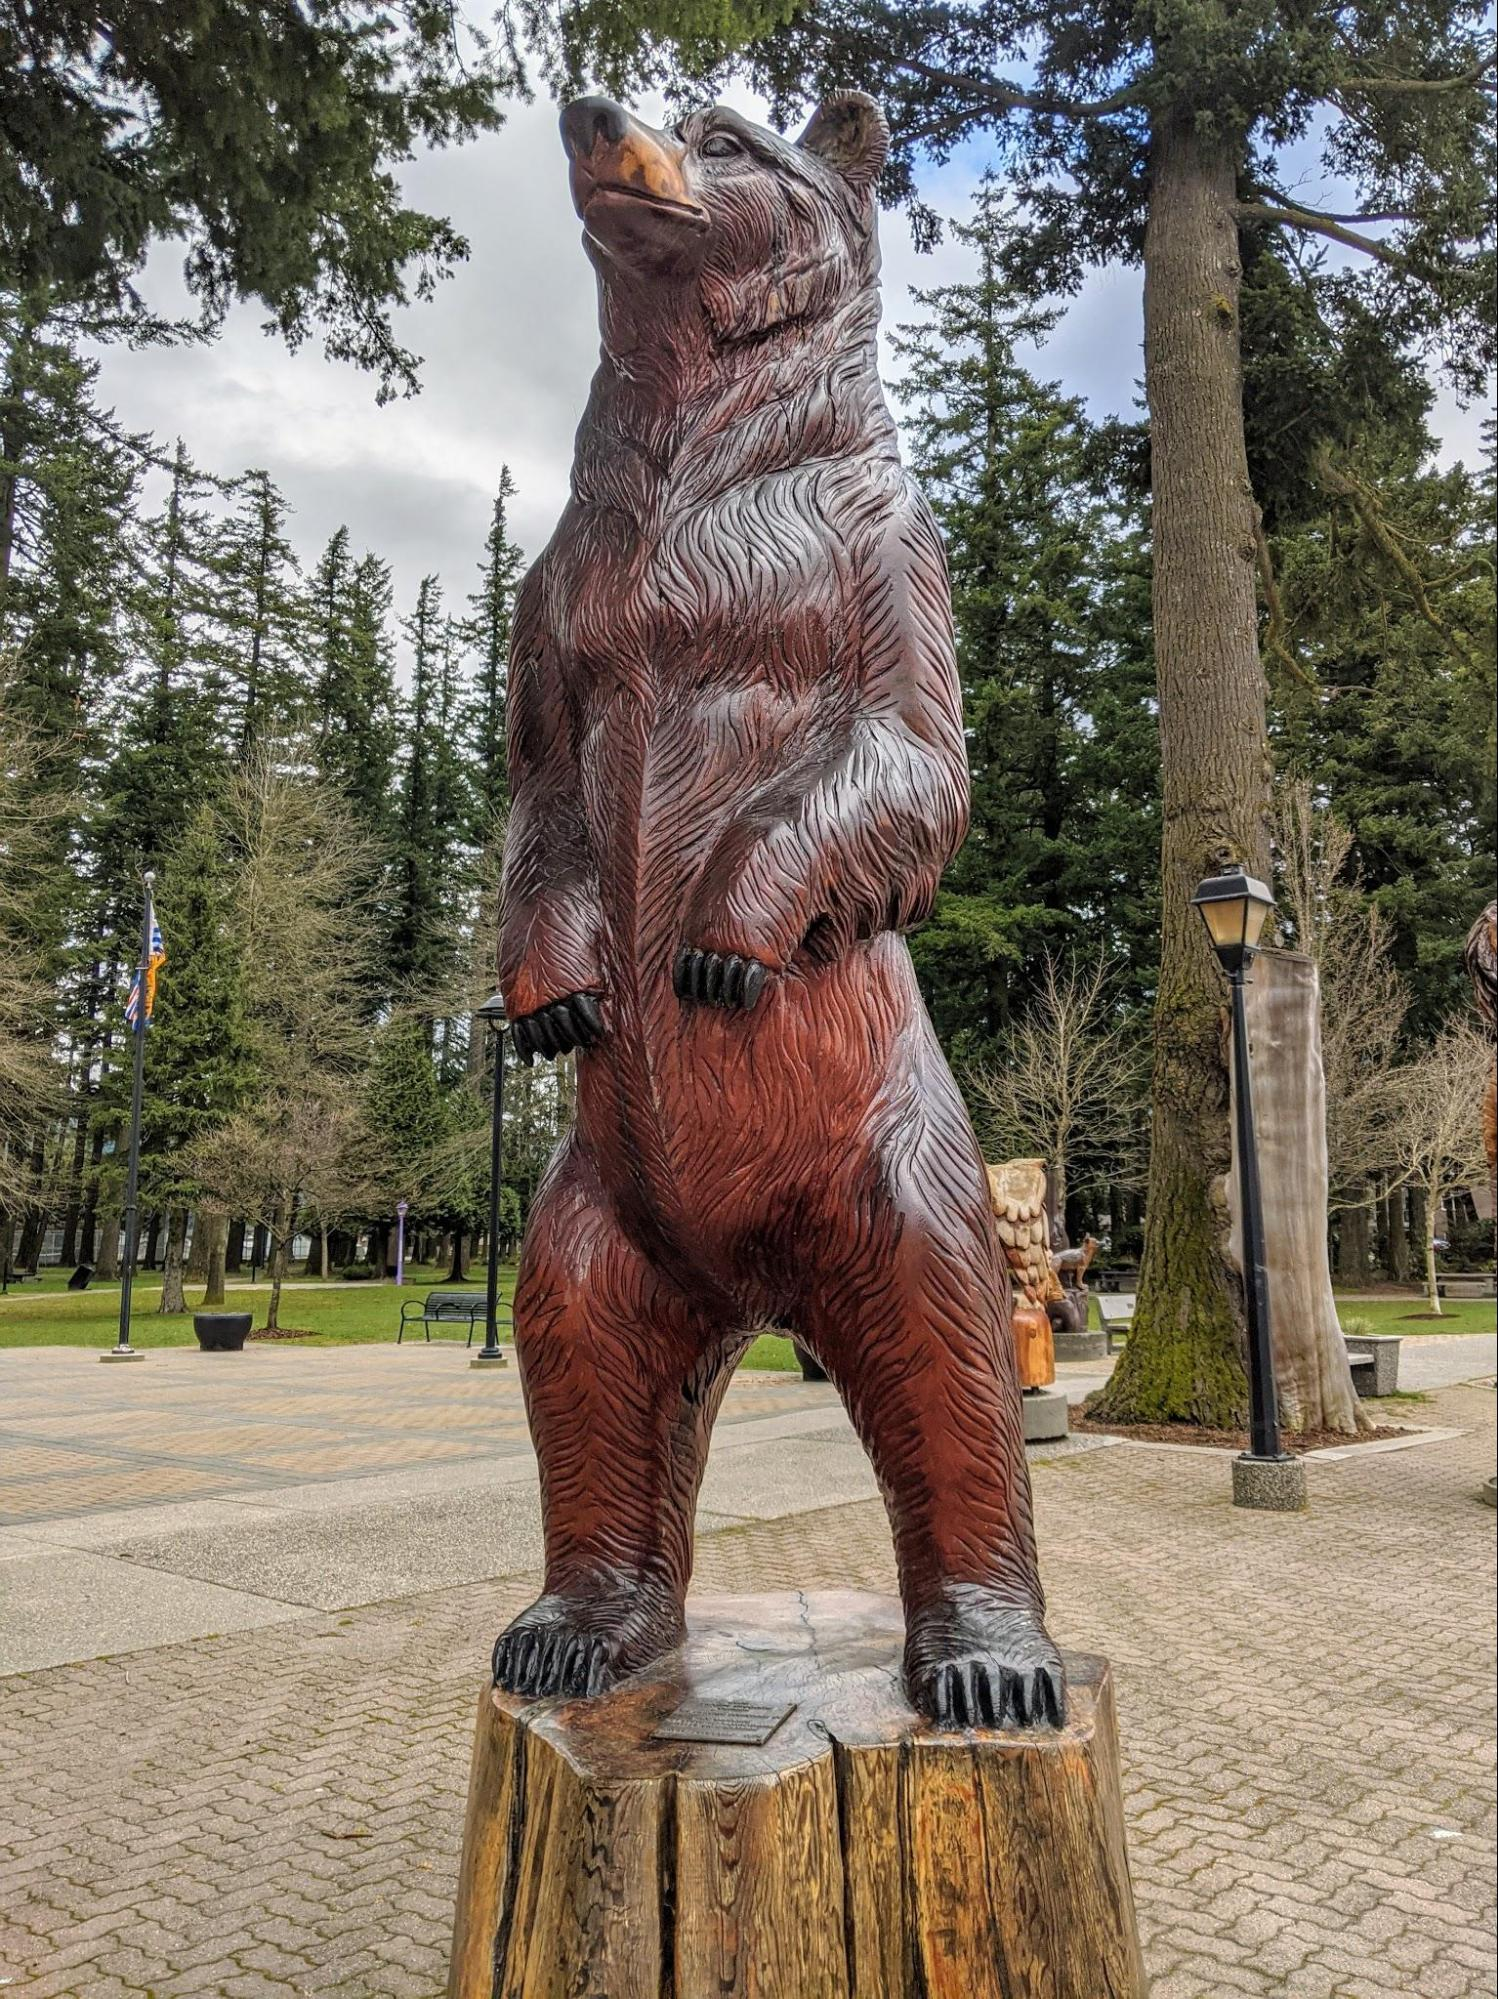 Chainsaw carving of a life-sized grizzly bear standing on it's hind legs. Carved by master carver Pete Ryan and displayed in the town of Hope, British Columbia, Canada